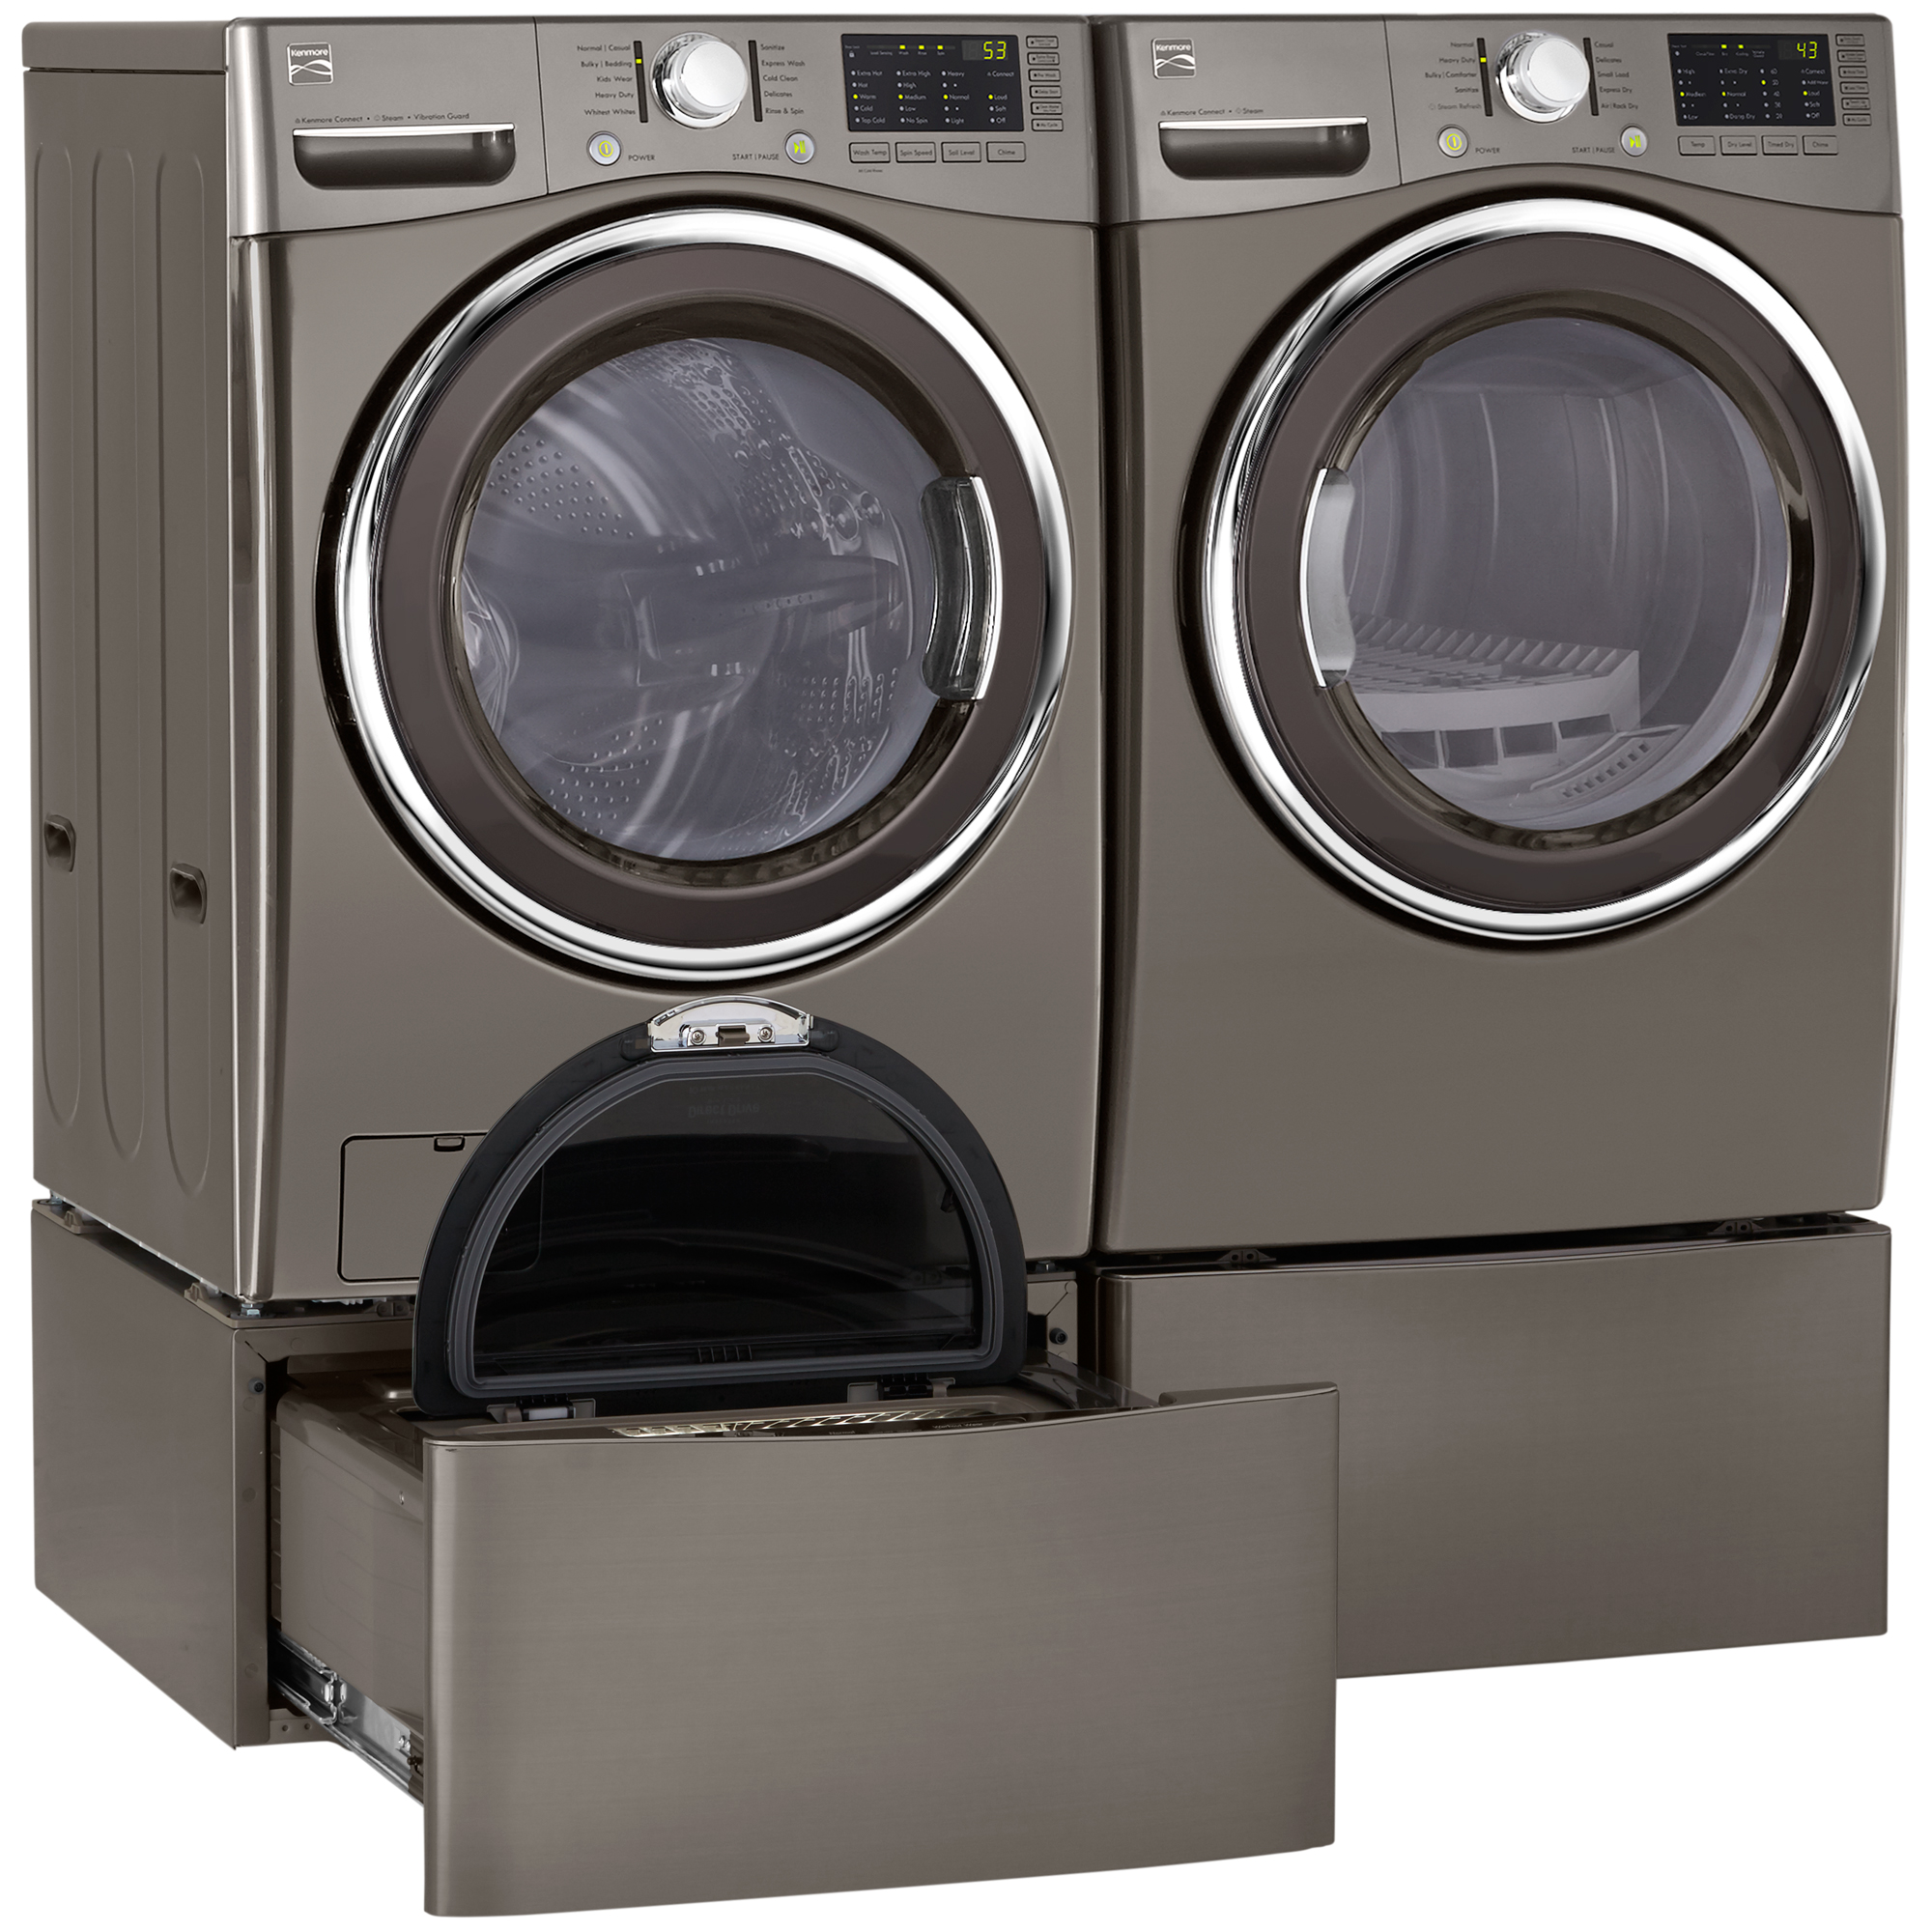 Kenmore 41383 4.3 cu. ft. Front-Load Washer w/Steam - Metallic Silver